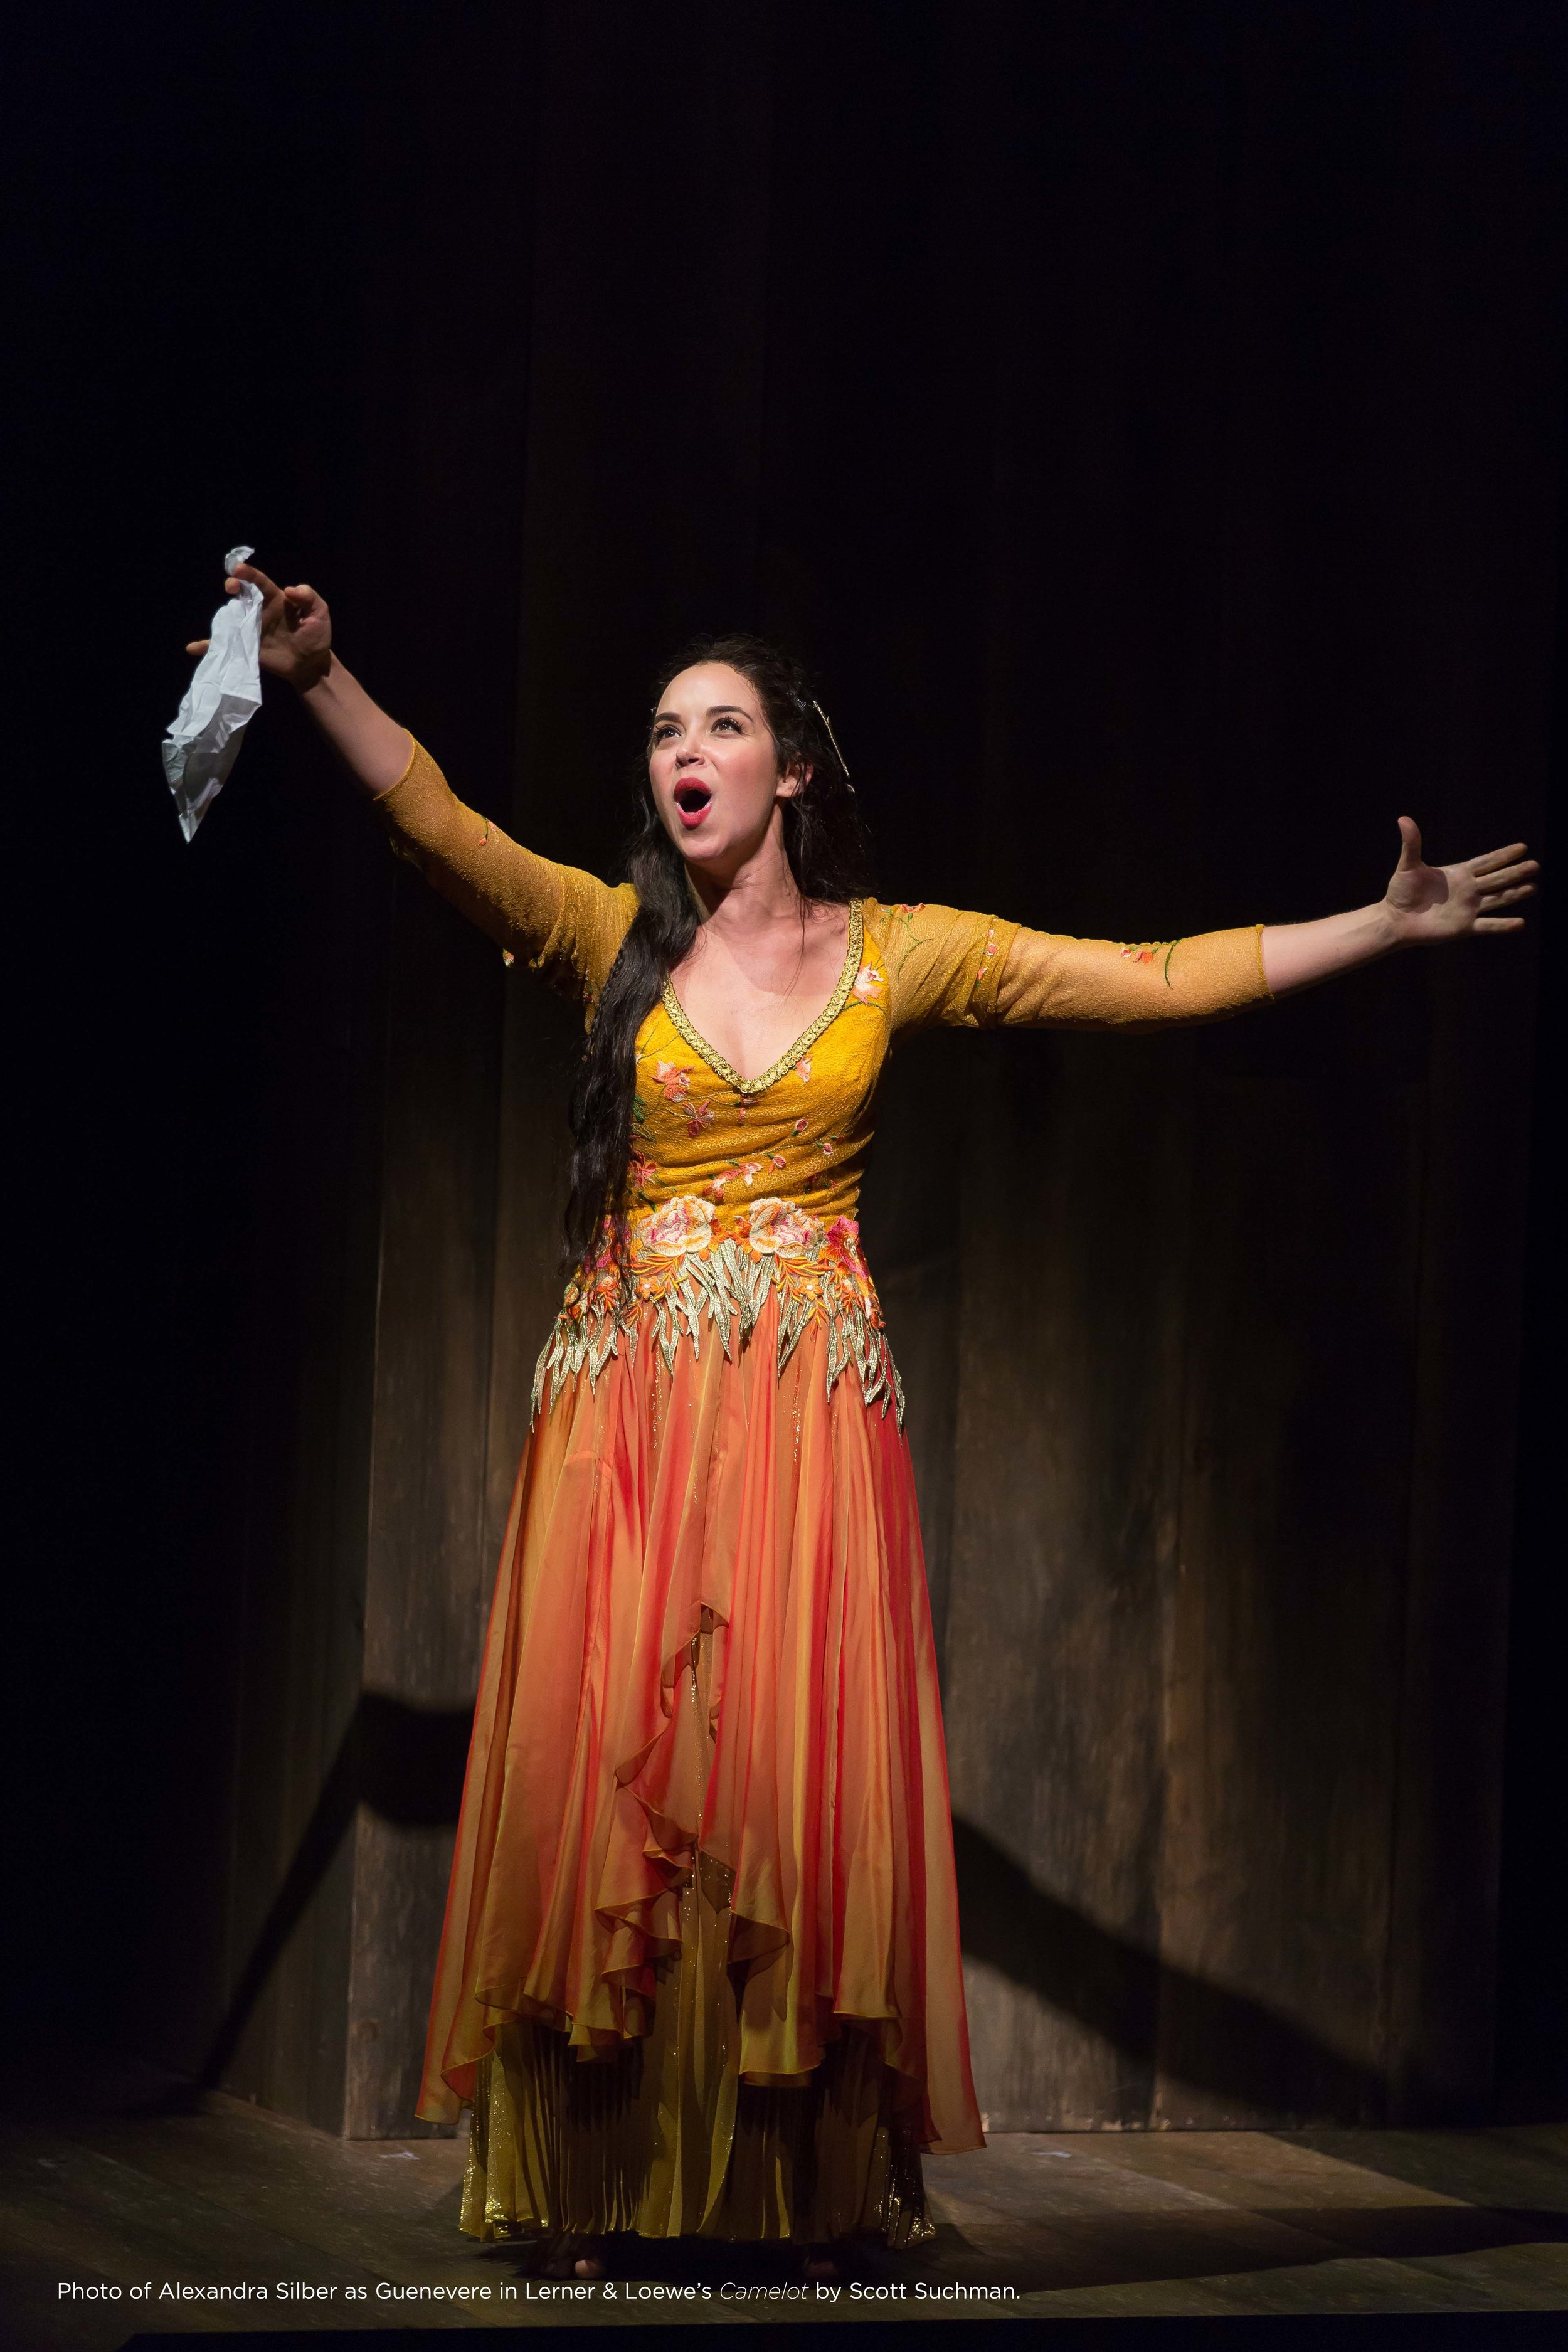 """Alexandra Silber in Lerner & Lowe's """"Camelot"""" at Shakespeare Theatre Company in Washington, DC, Photo Credit:Scott Suchman"""